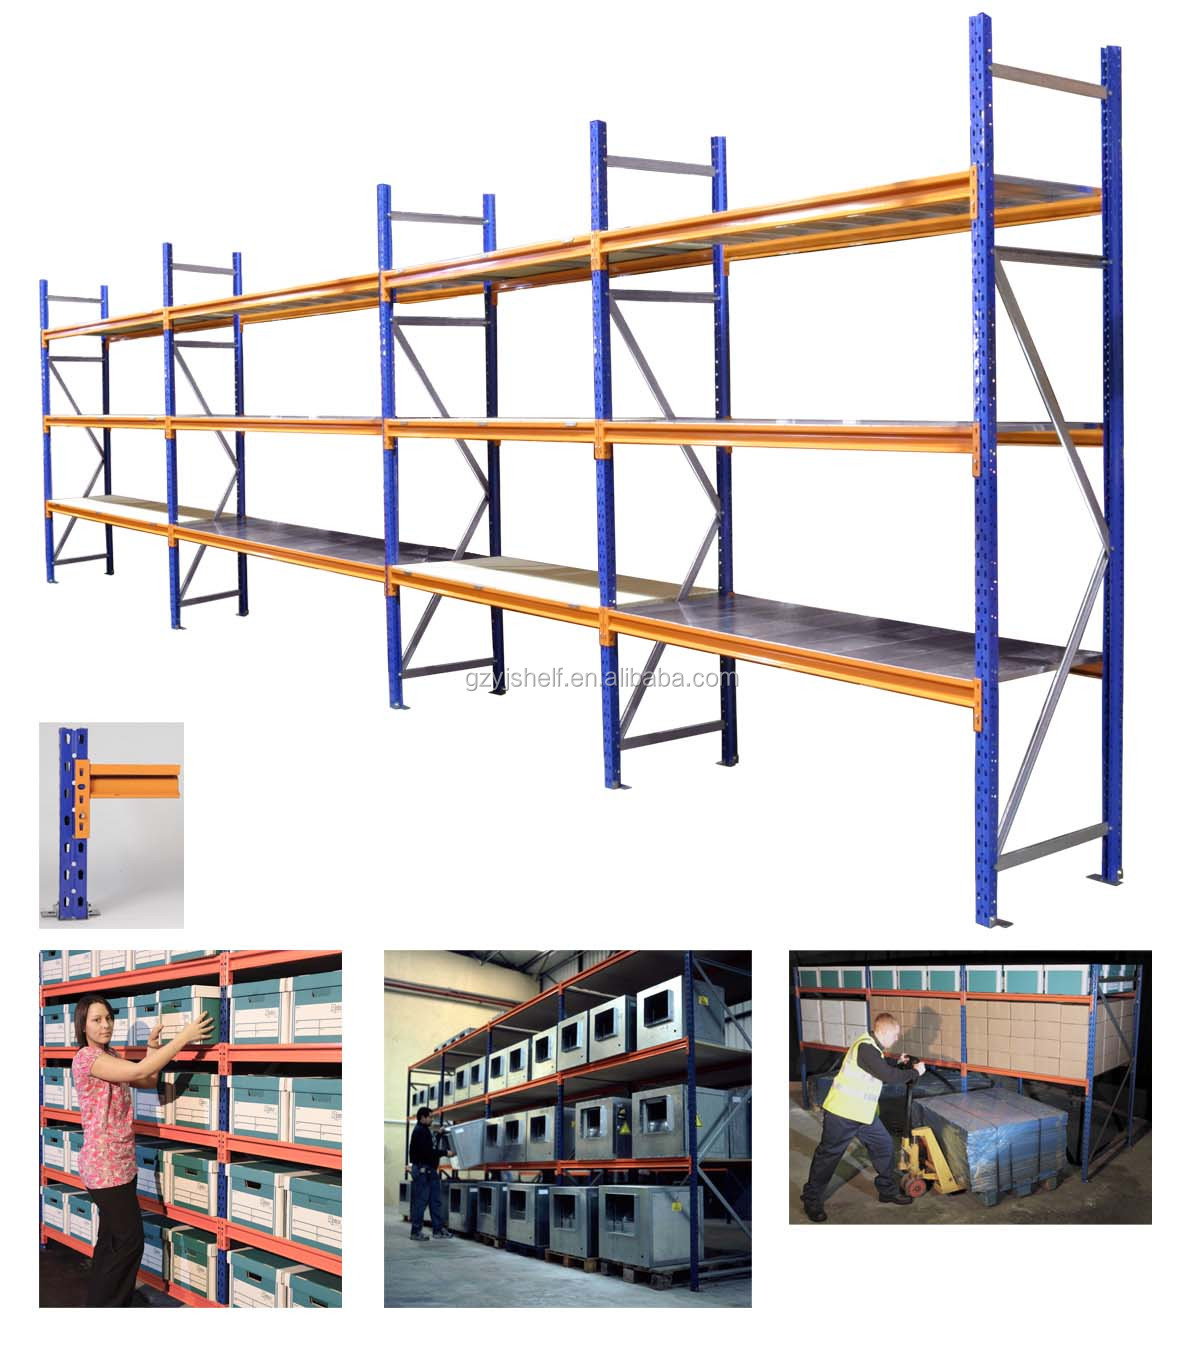 rack end storage product accessories of warehouse protectos products aisle protection racks with pallet protectors